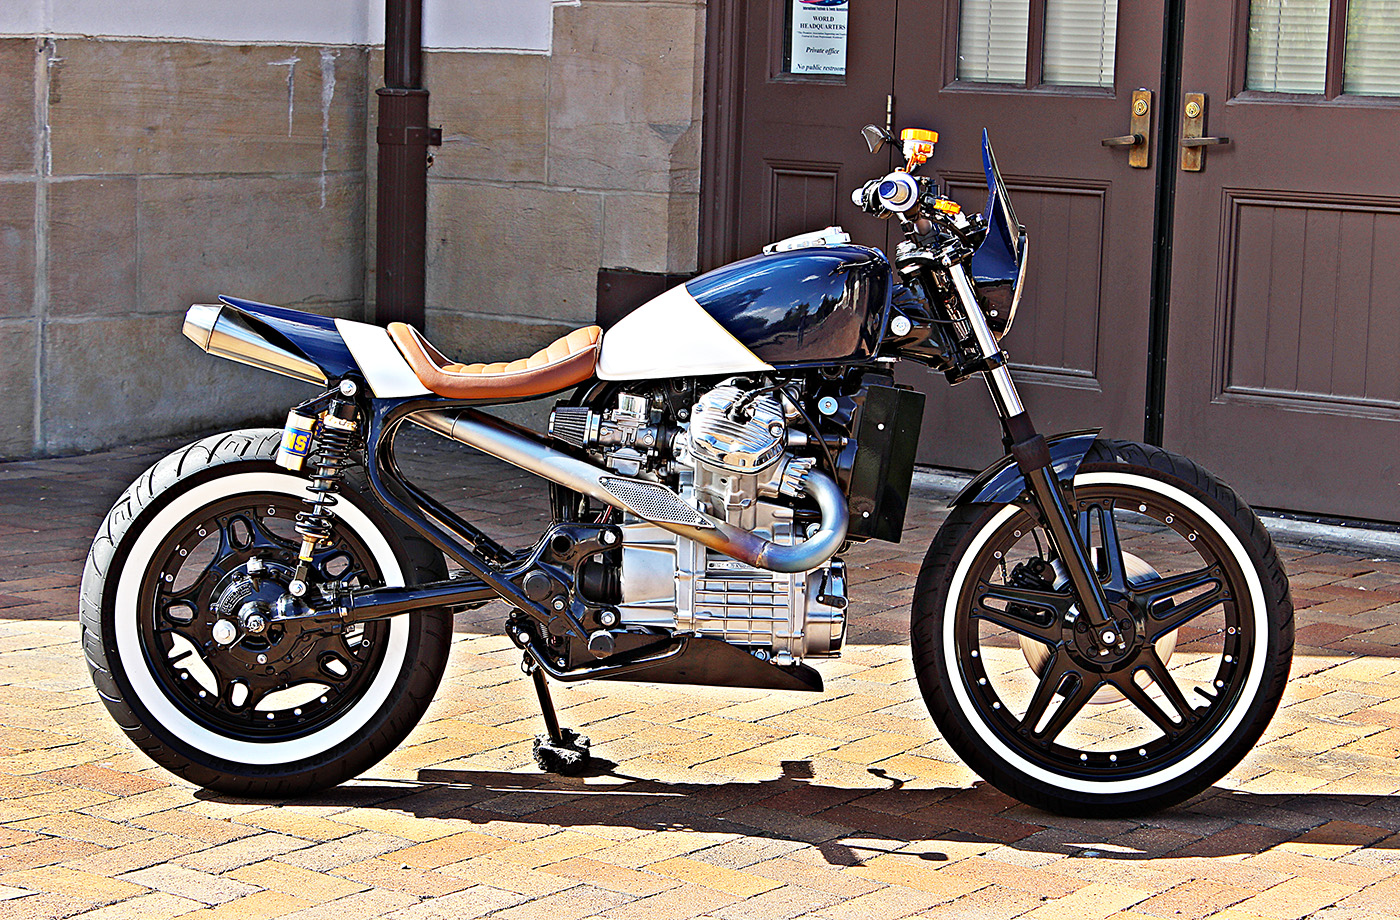 Jmr Customs Builds Amazing Honda Cx500 Racer Autoevolution